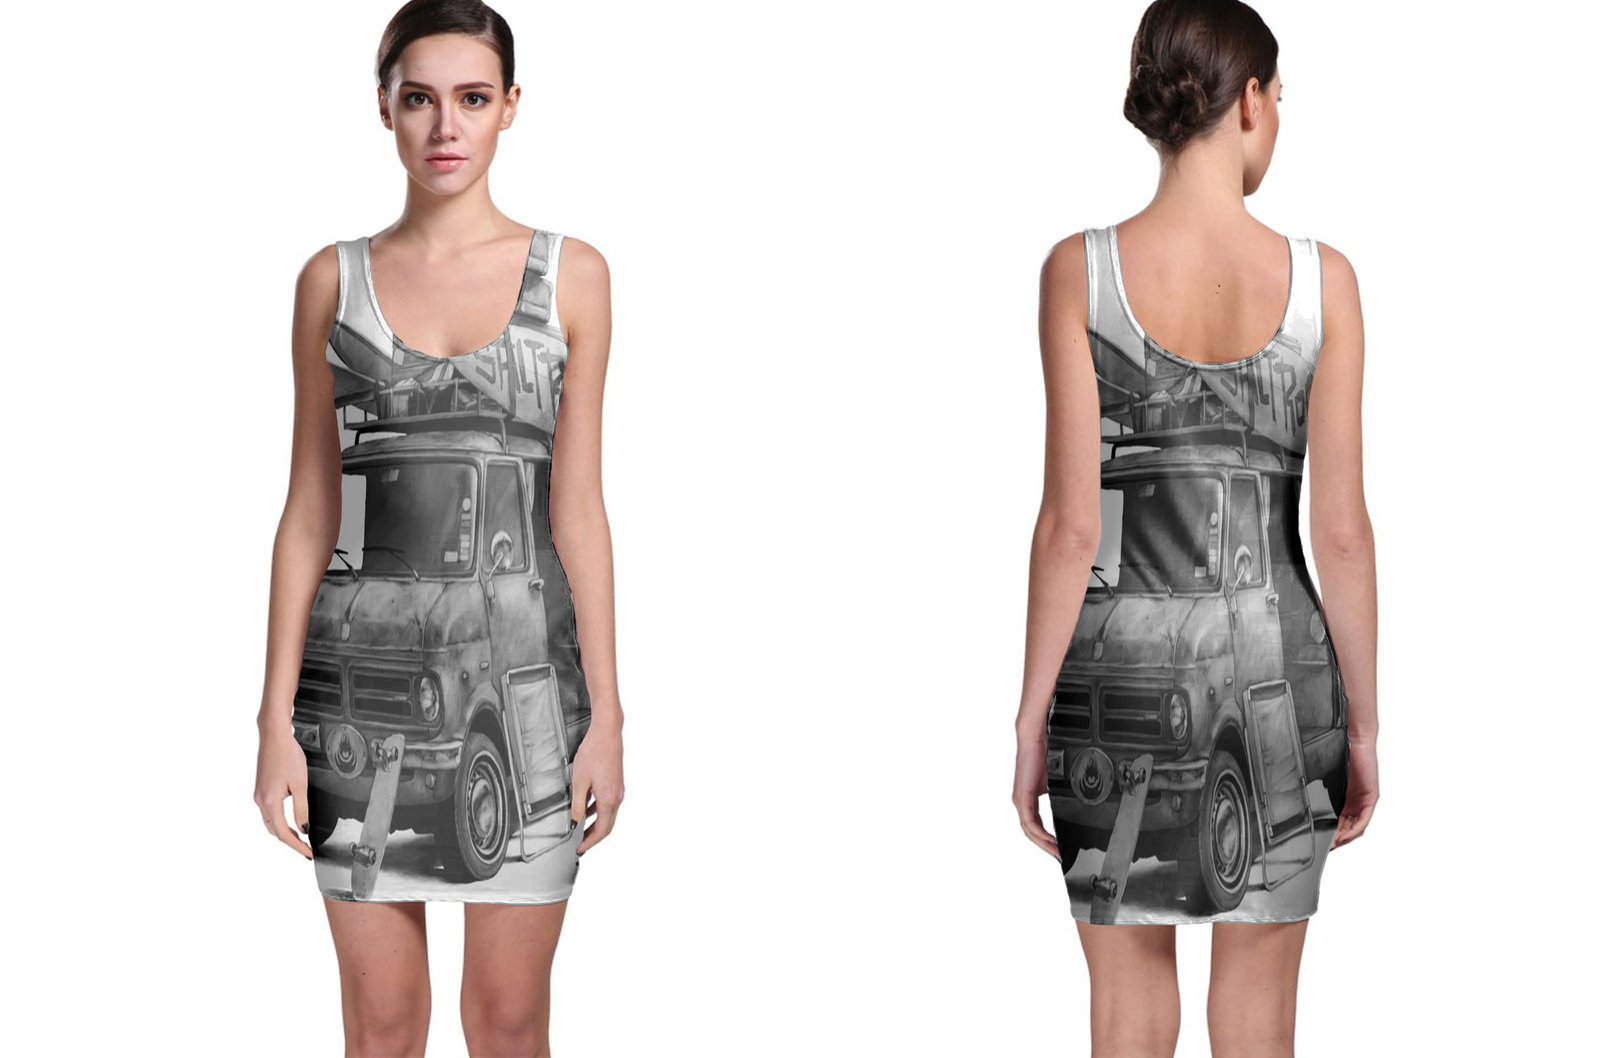 Van 1 saltrock bodycon dress